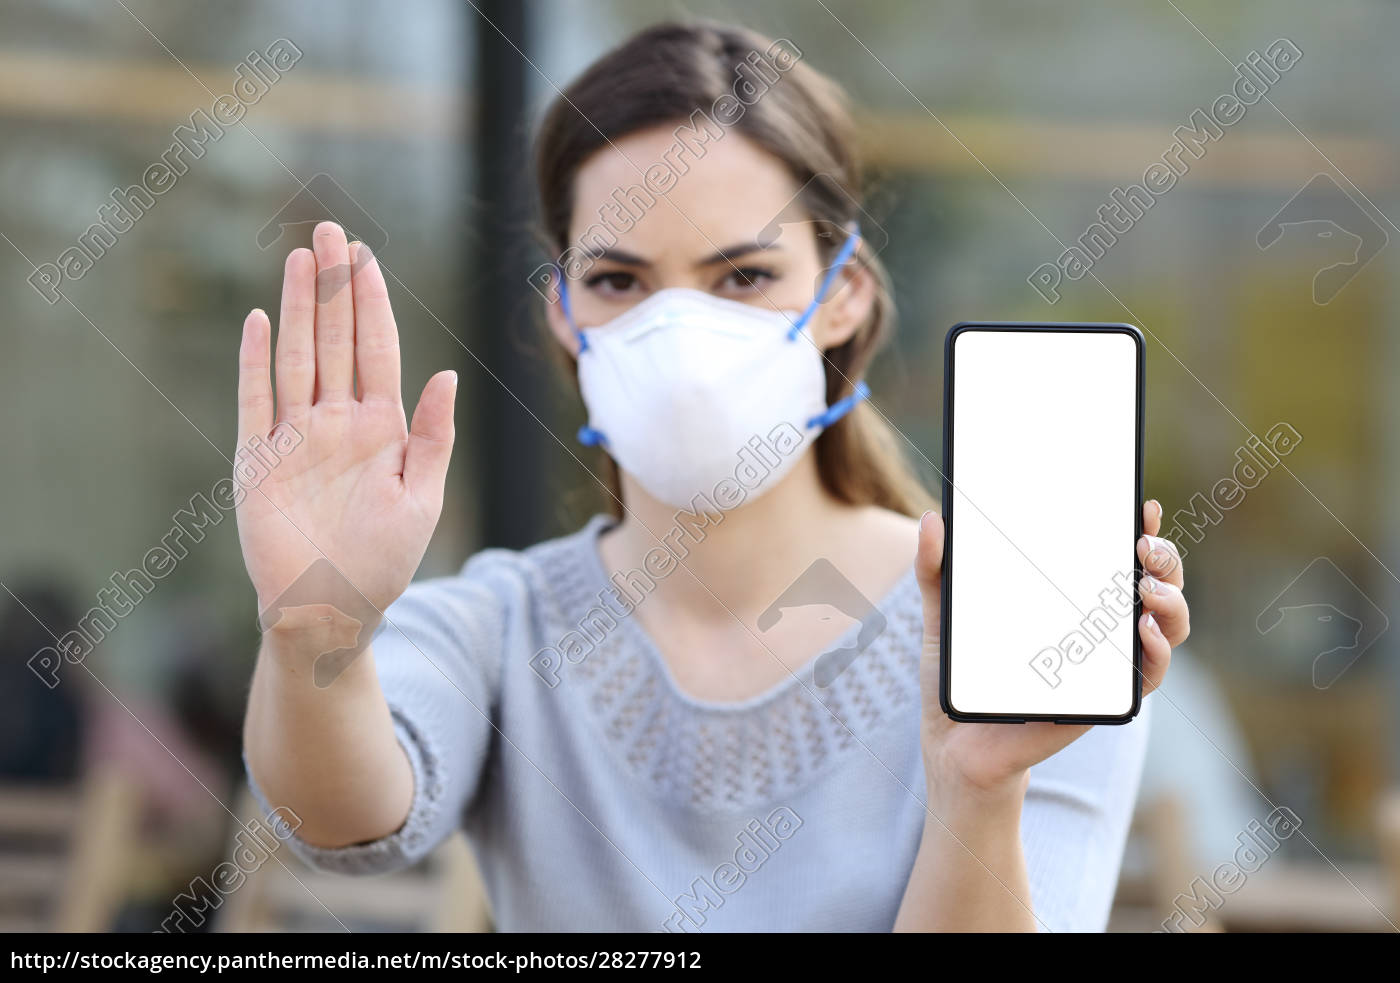 girl, with, mask, gesturing, stop, showing - 28277912